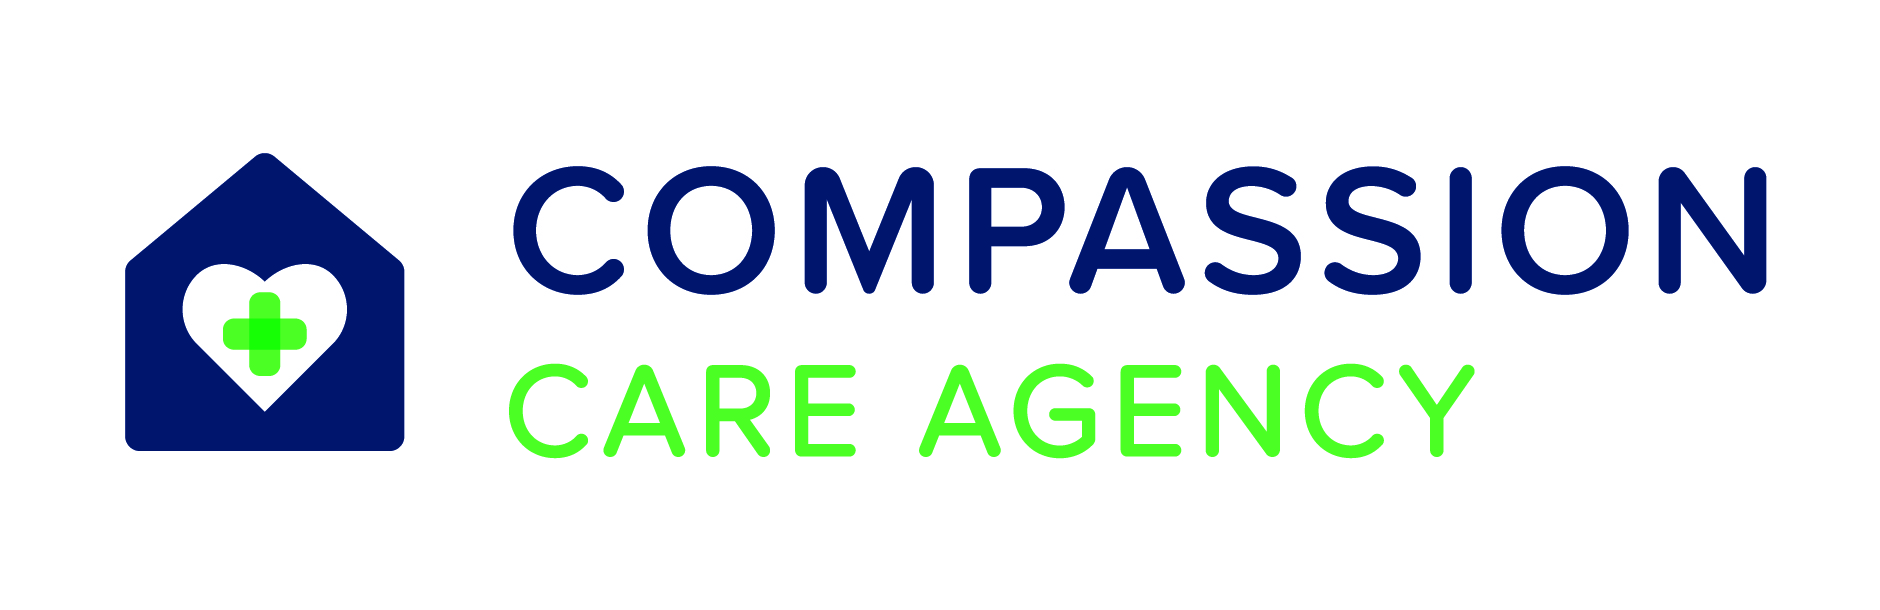 Compassion Care Agency